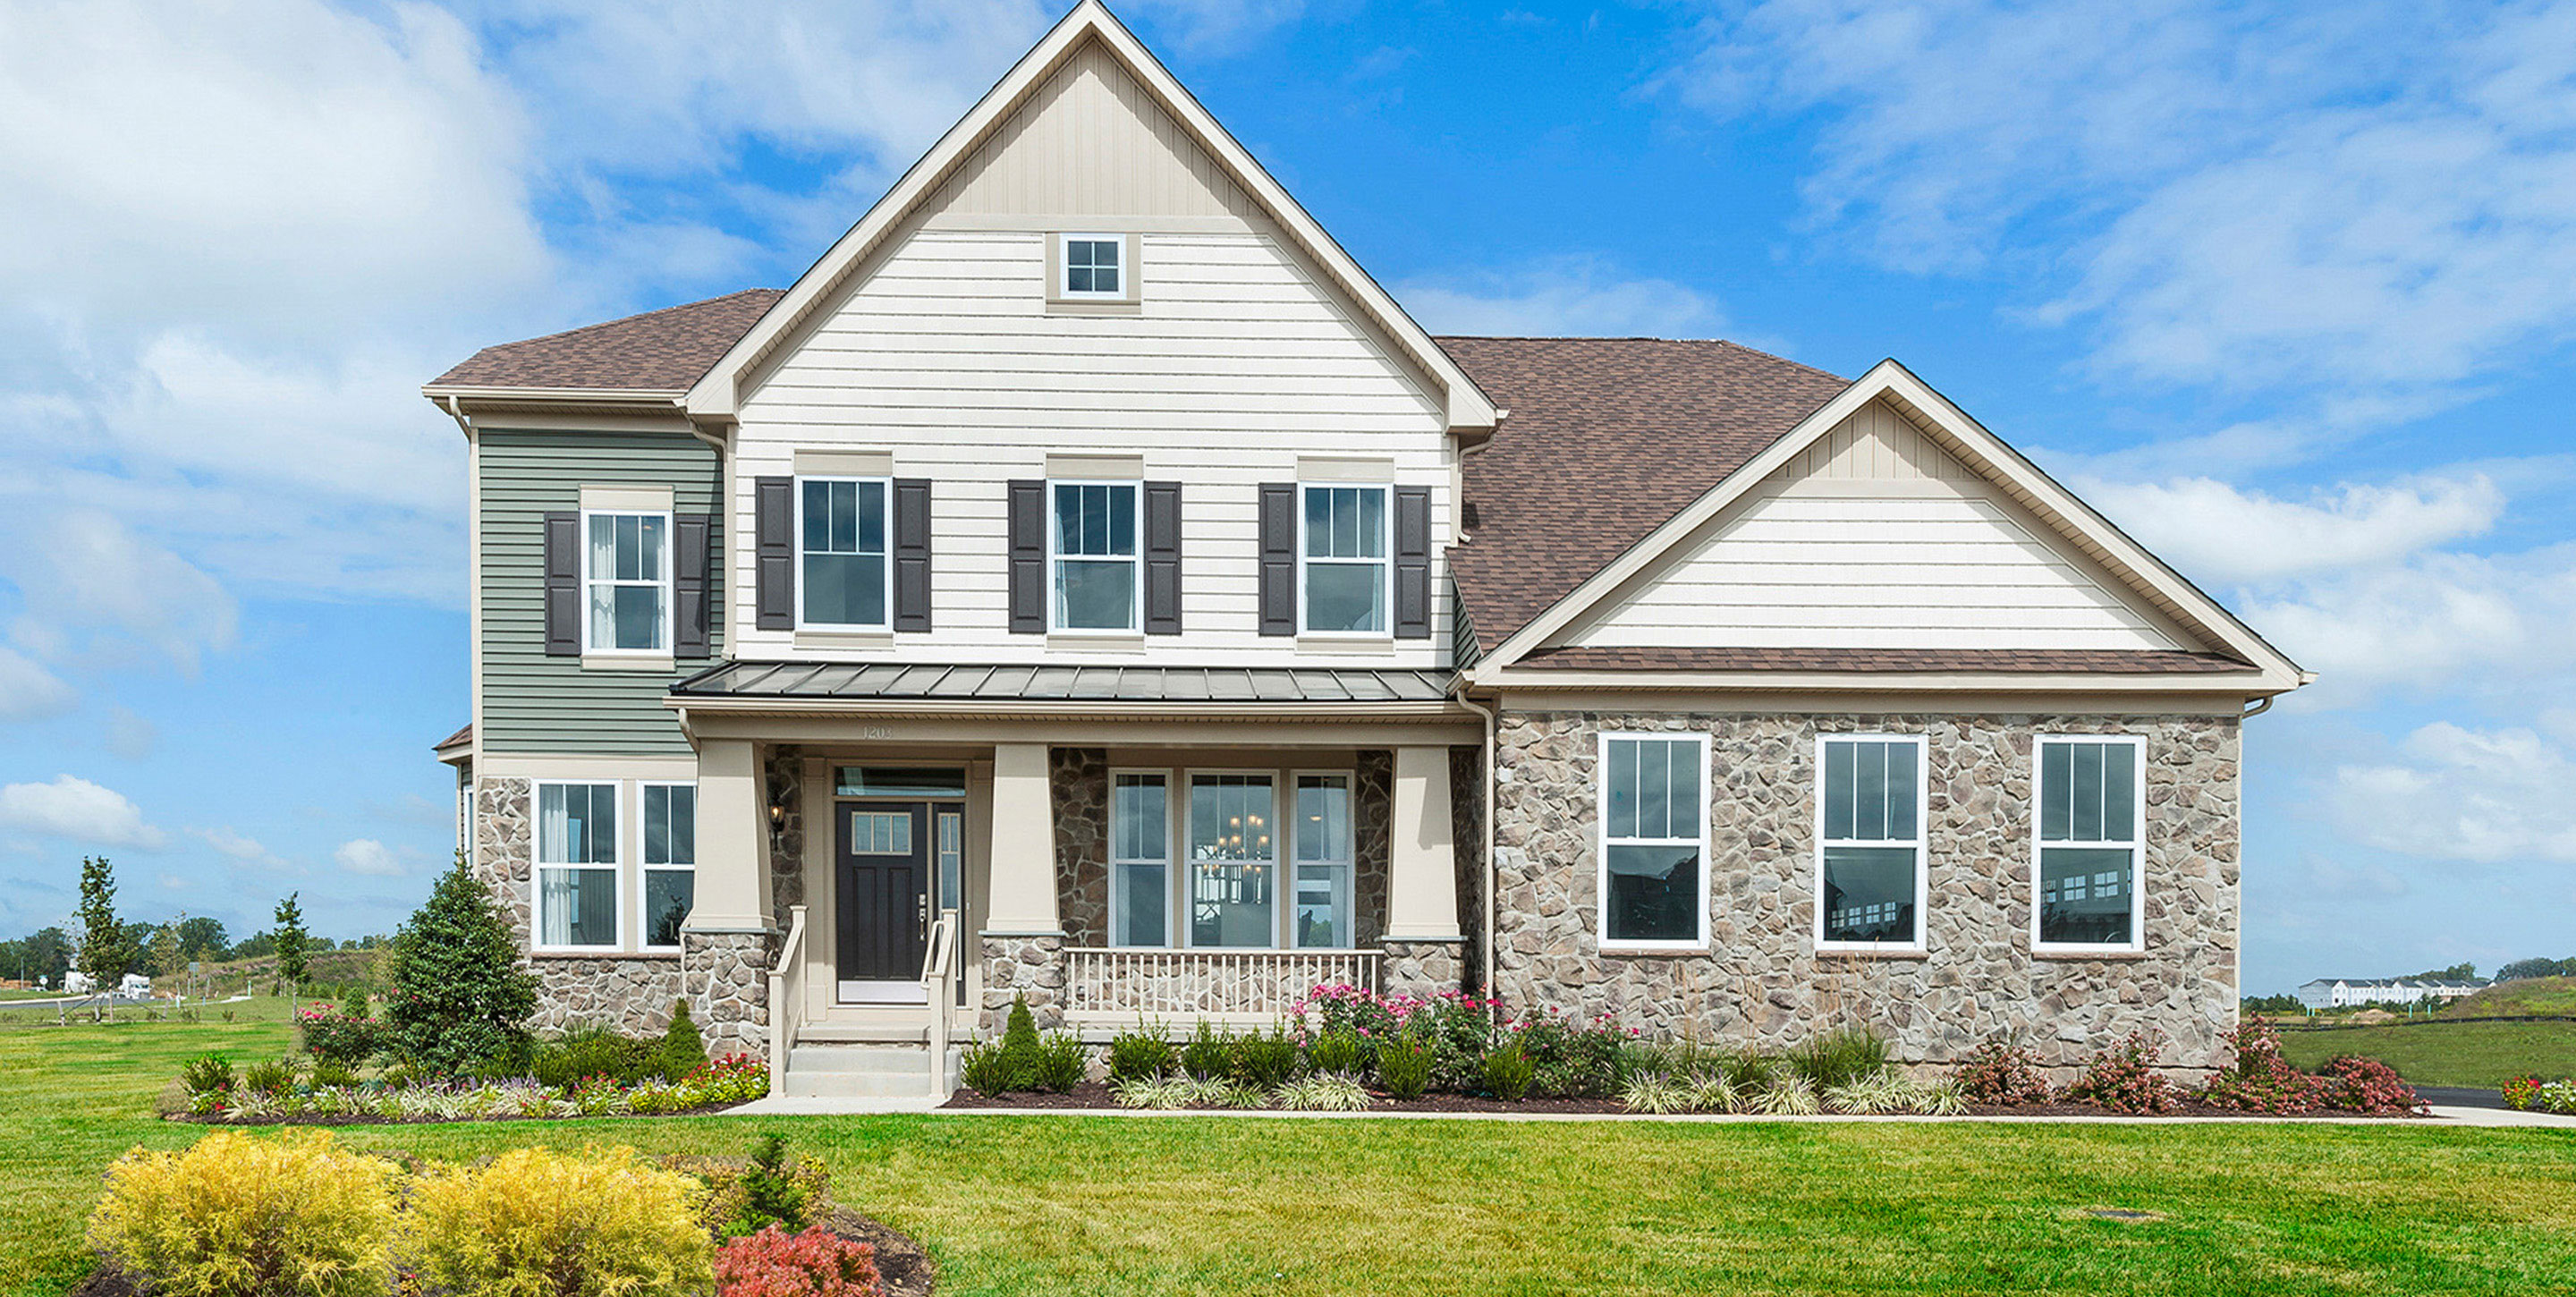 7 Reasons to Buy a Home in Delaware